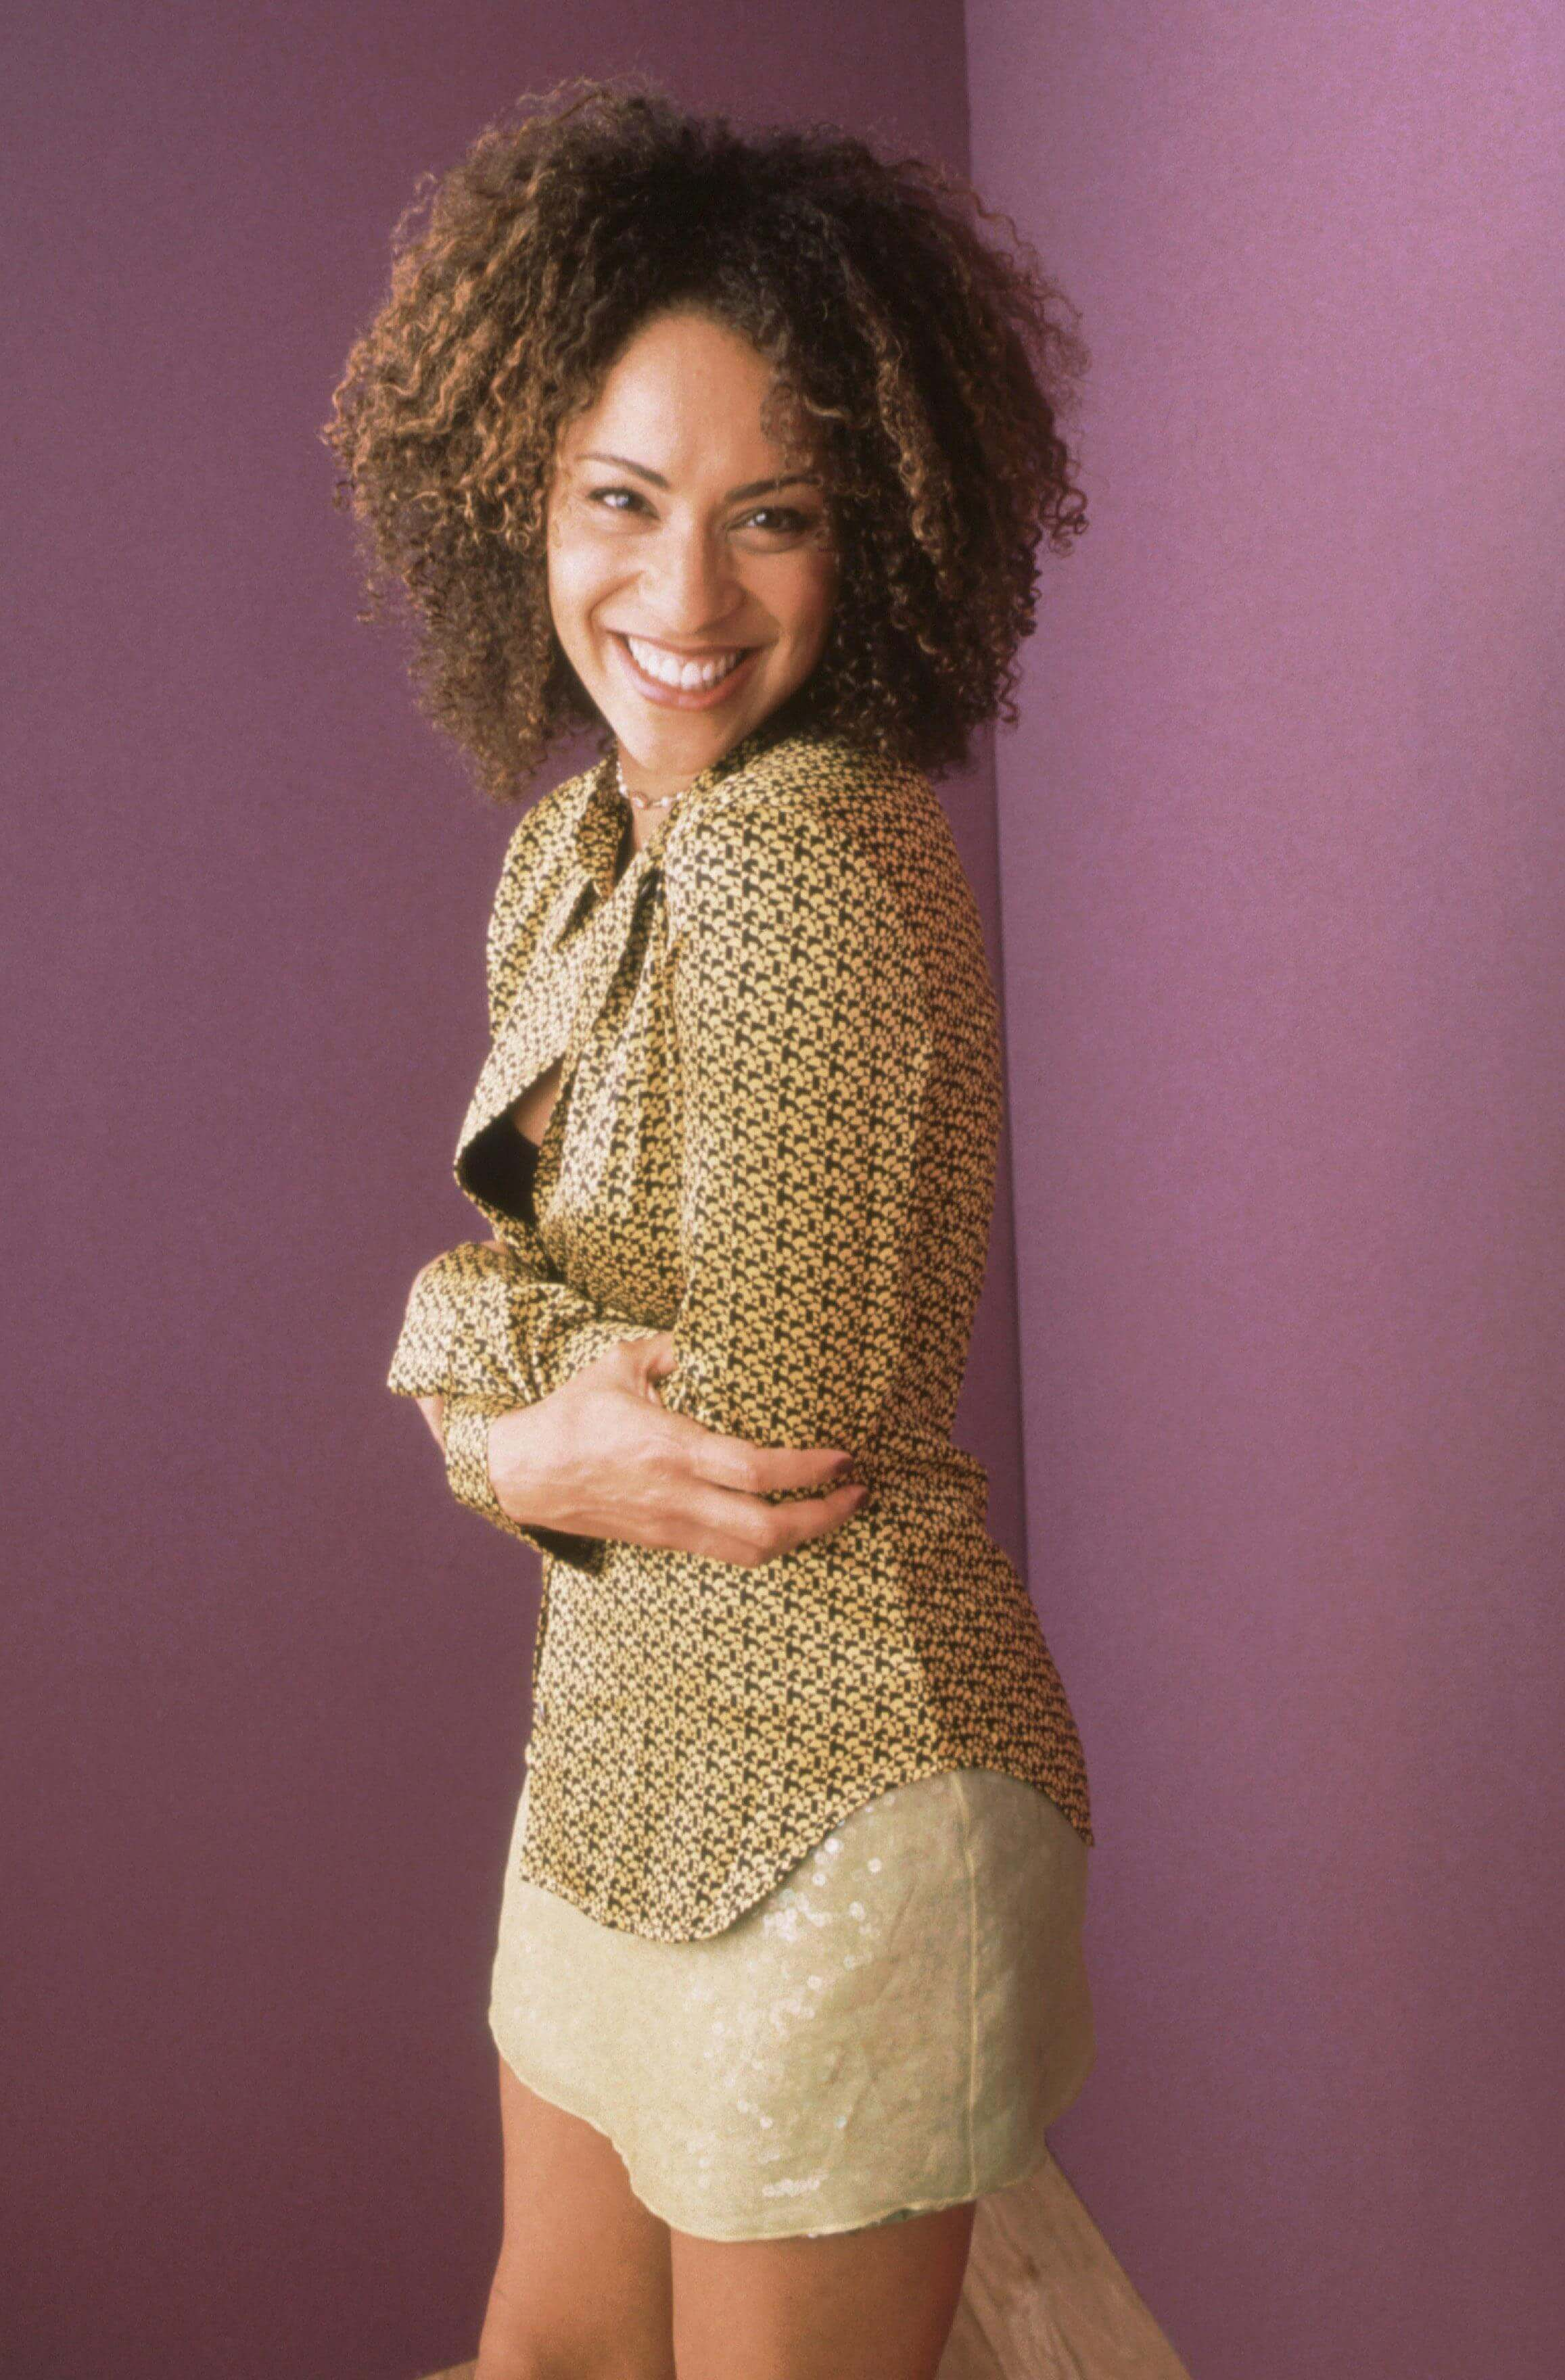 Karyn Parsons awesome smile